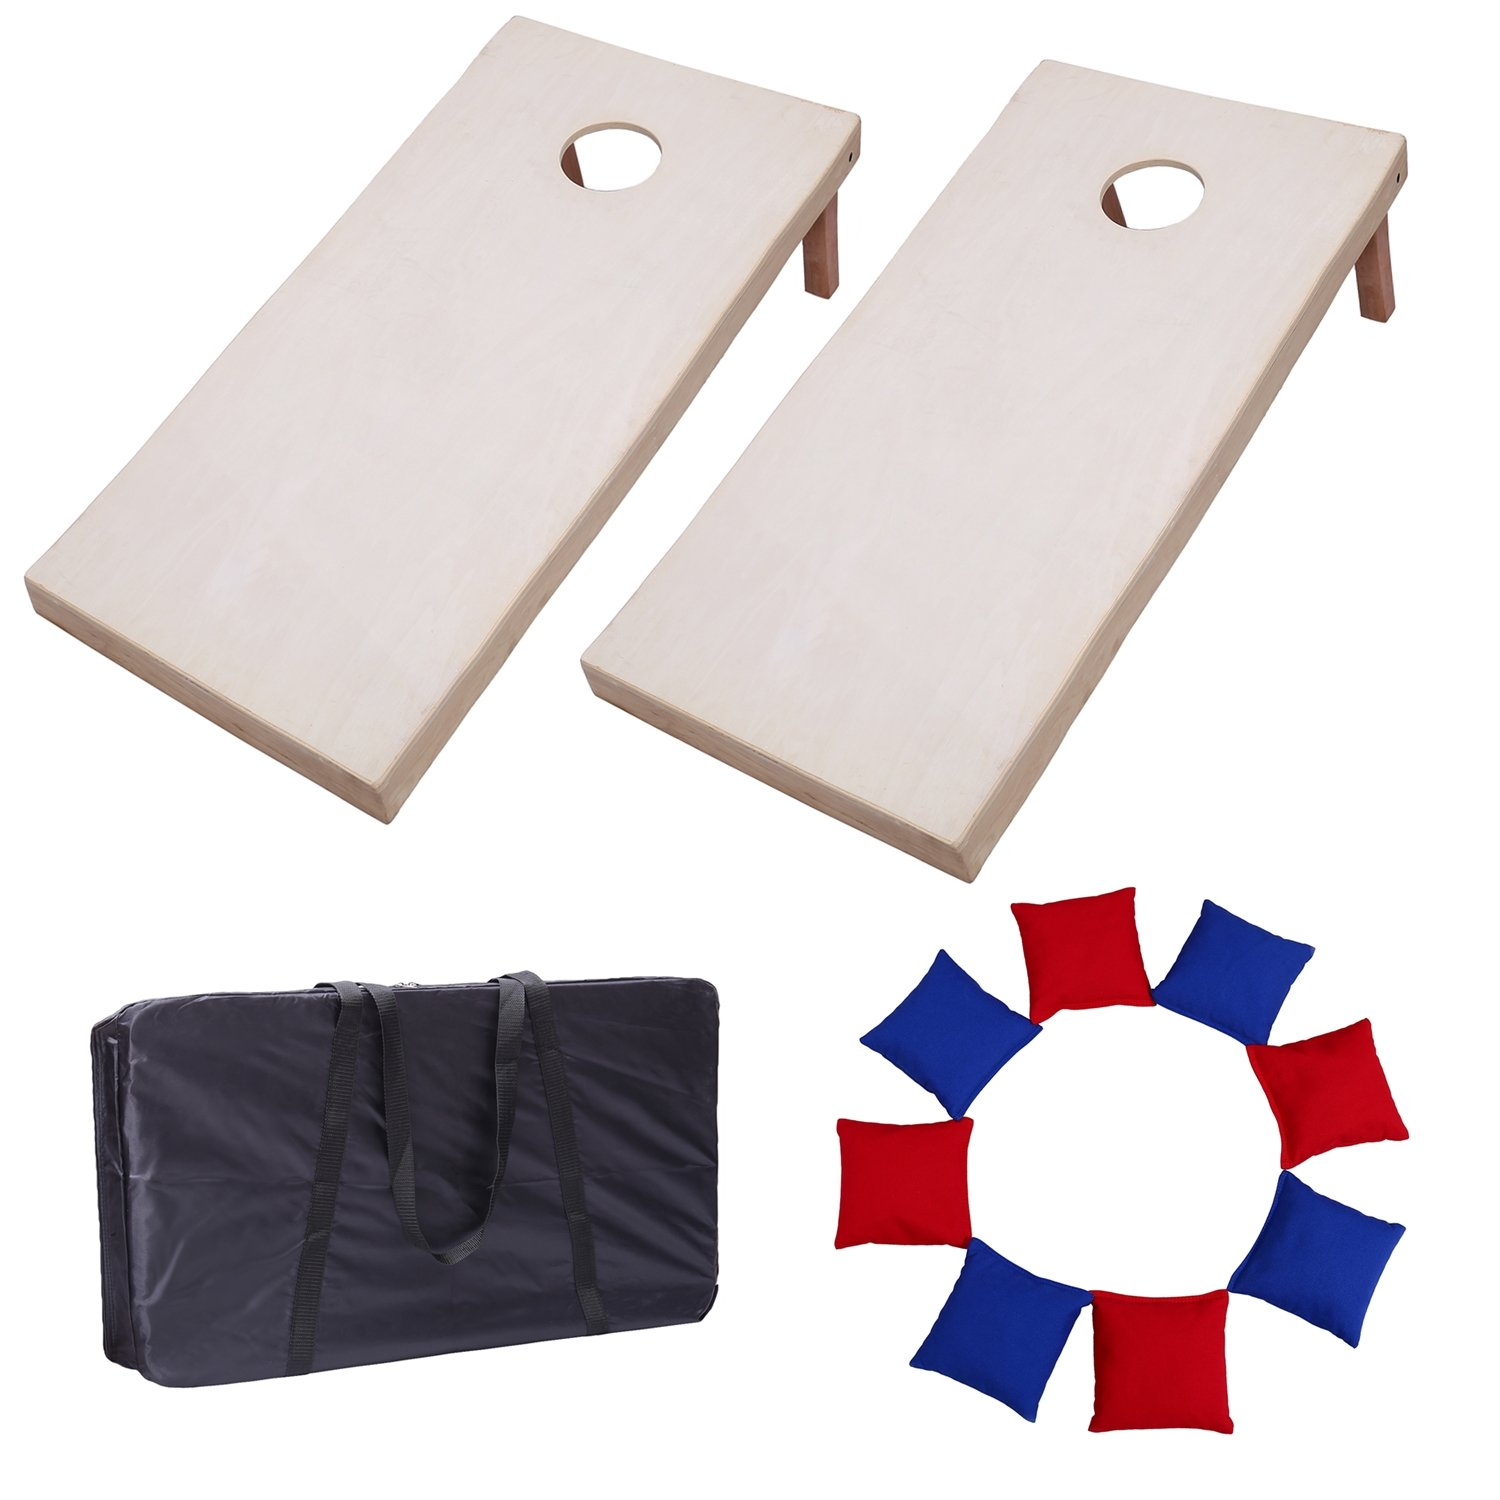 Victoria Young Solid Wood Supreme Quality Cornhole Bean Bag Toss Game Set with 8 Bean Bags (4ft x 2ft) by Victoria Young